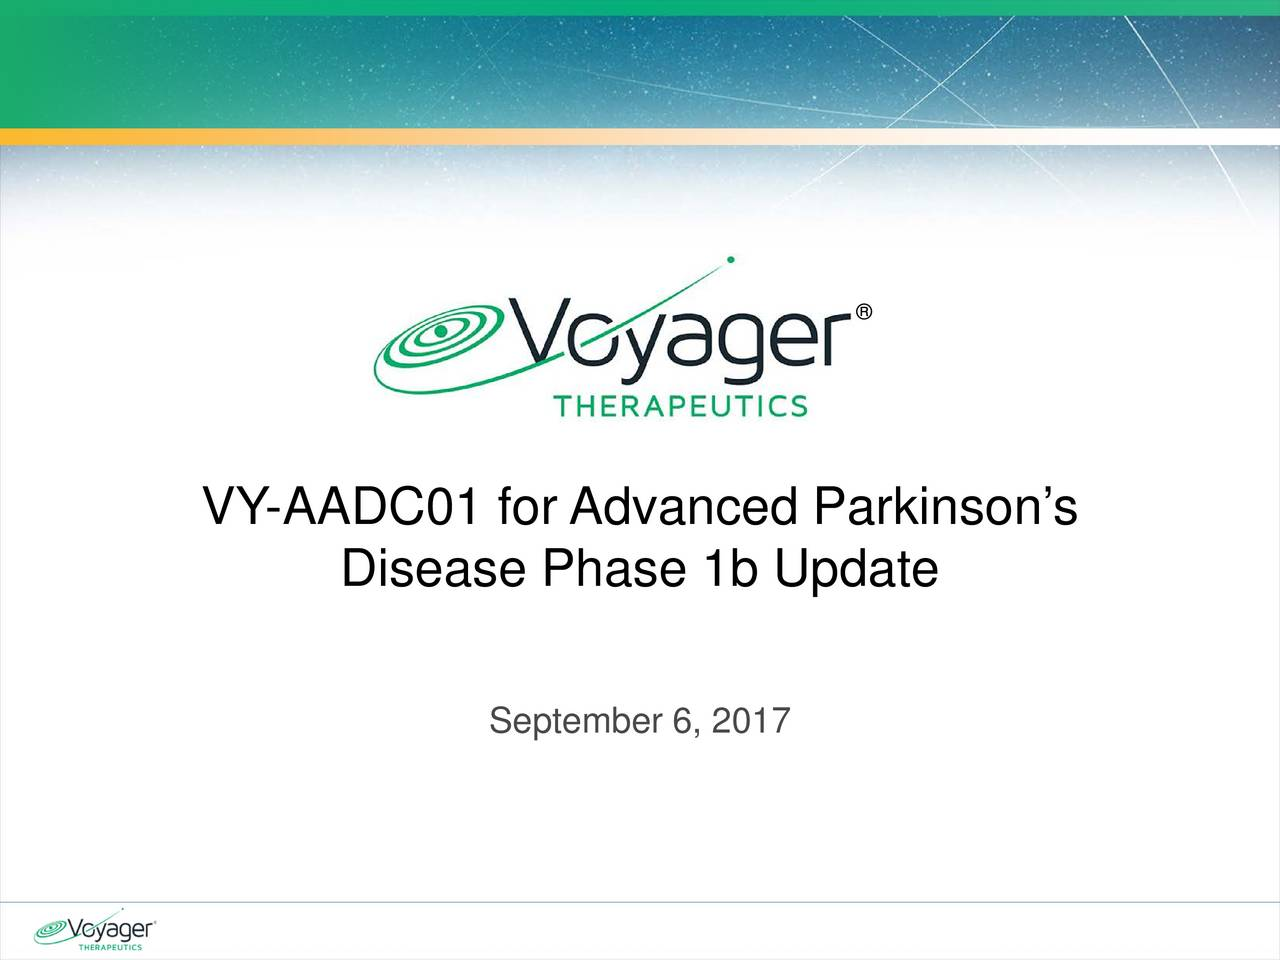 VY-AADC01 for Advanced Parkinsons Disease Phase 1b Update September 6, 2017